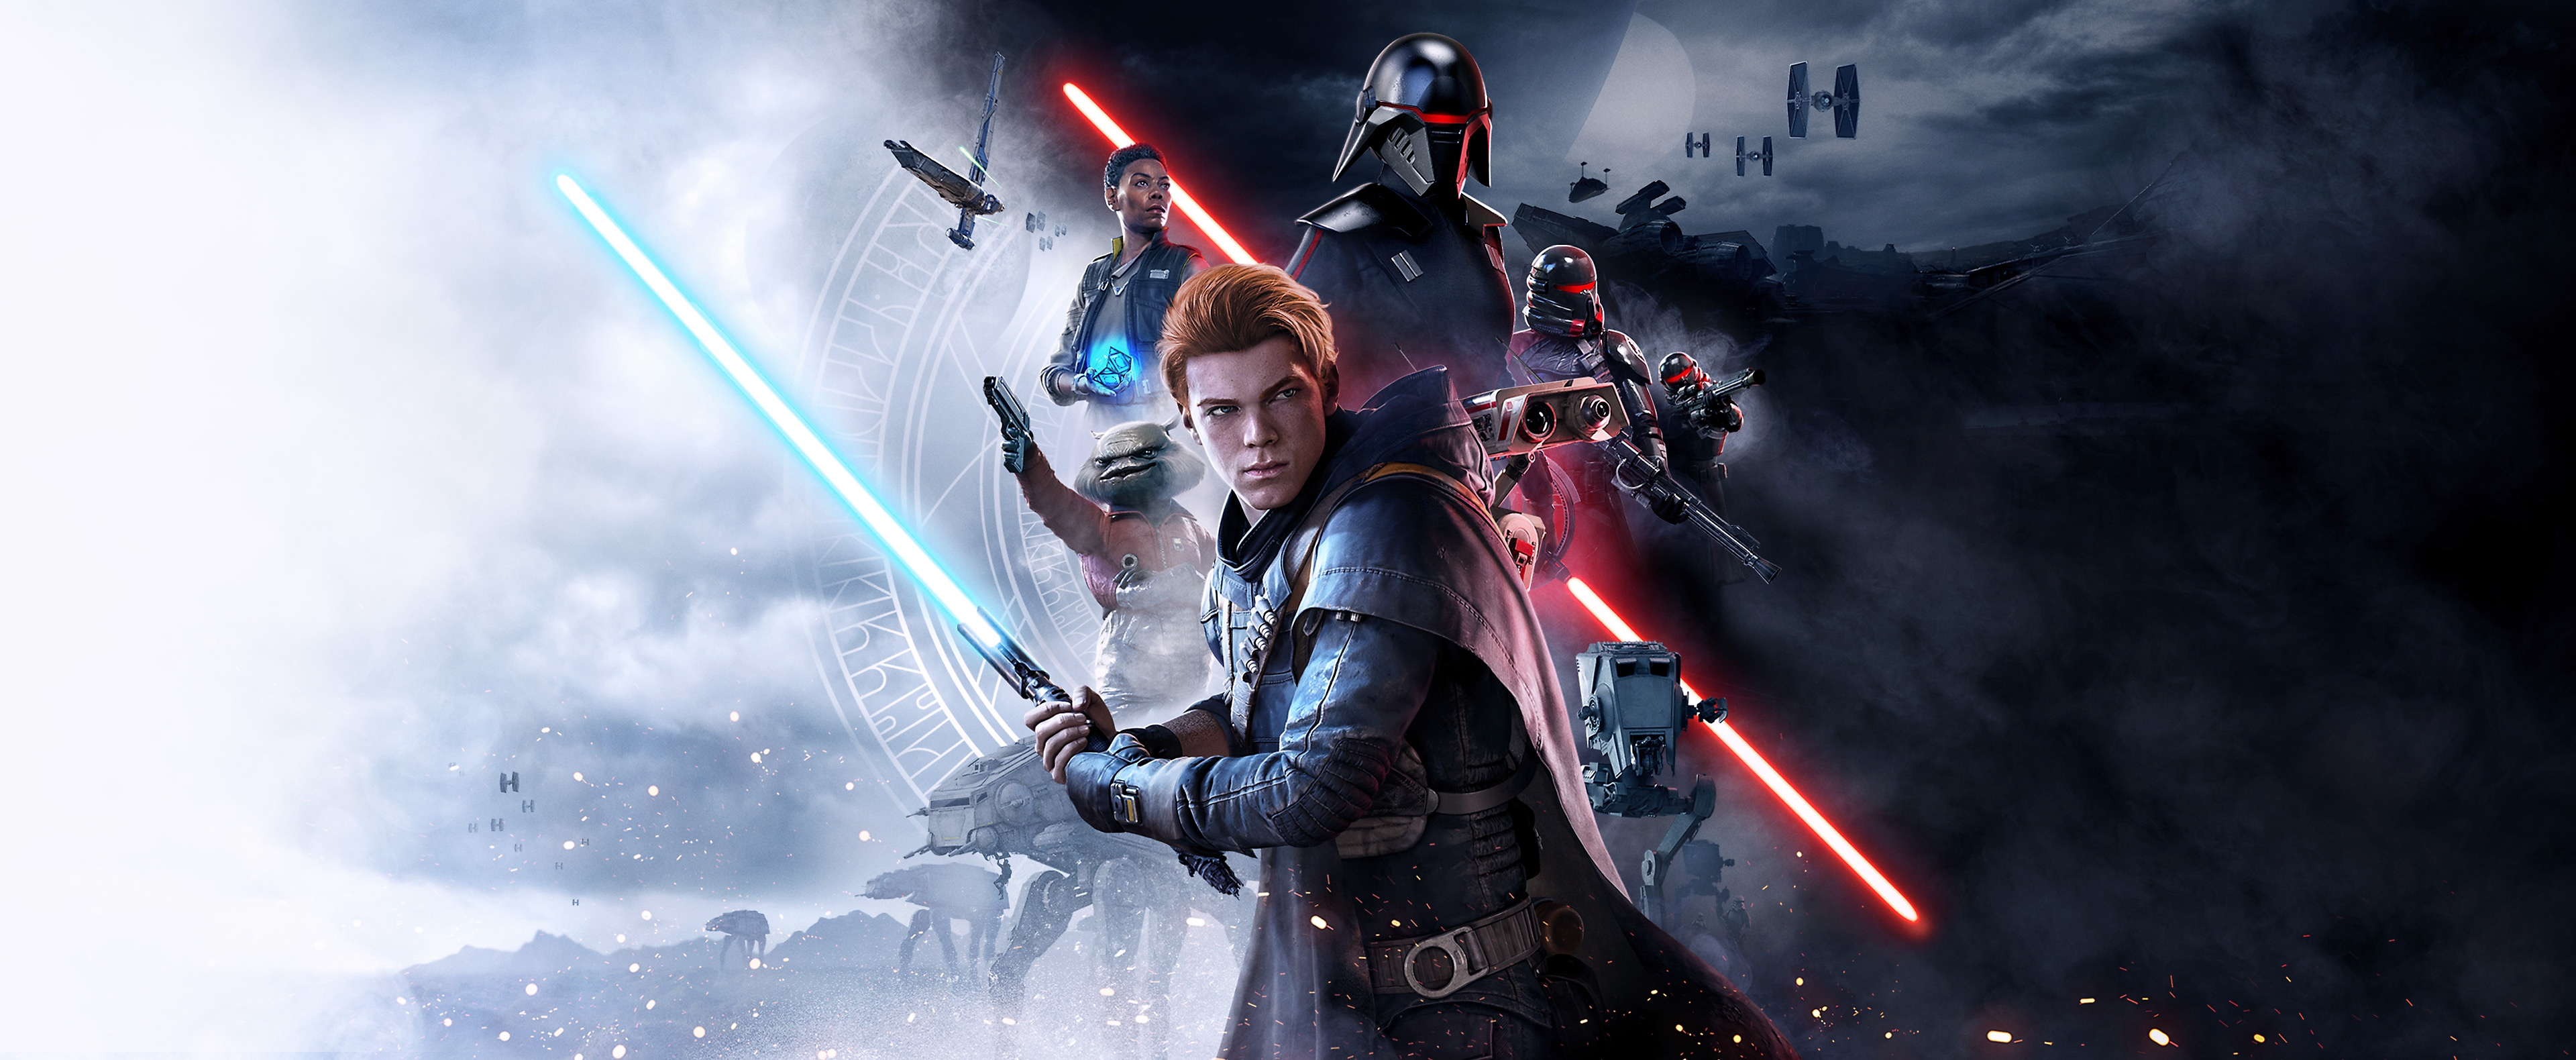 STAR WARS Jedi: Fallen Order - Hero Art